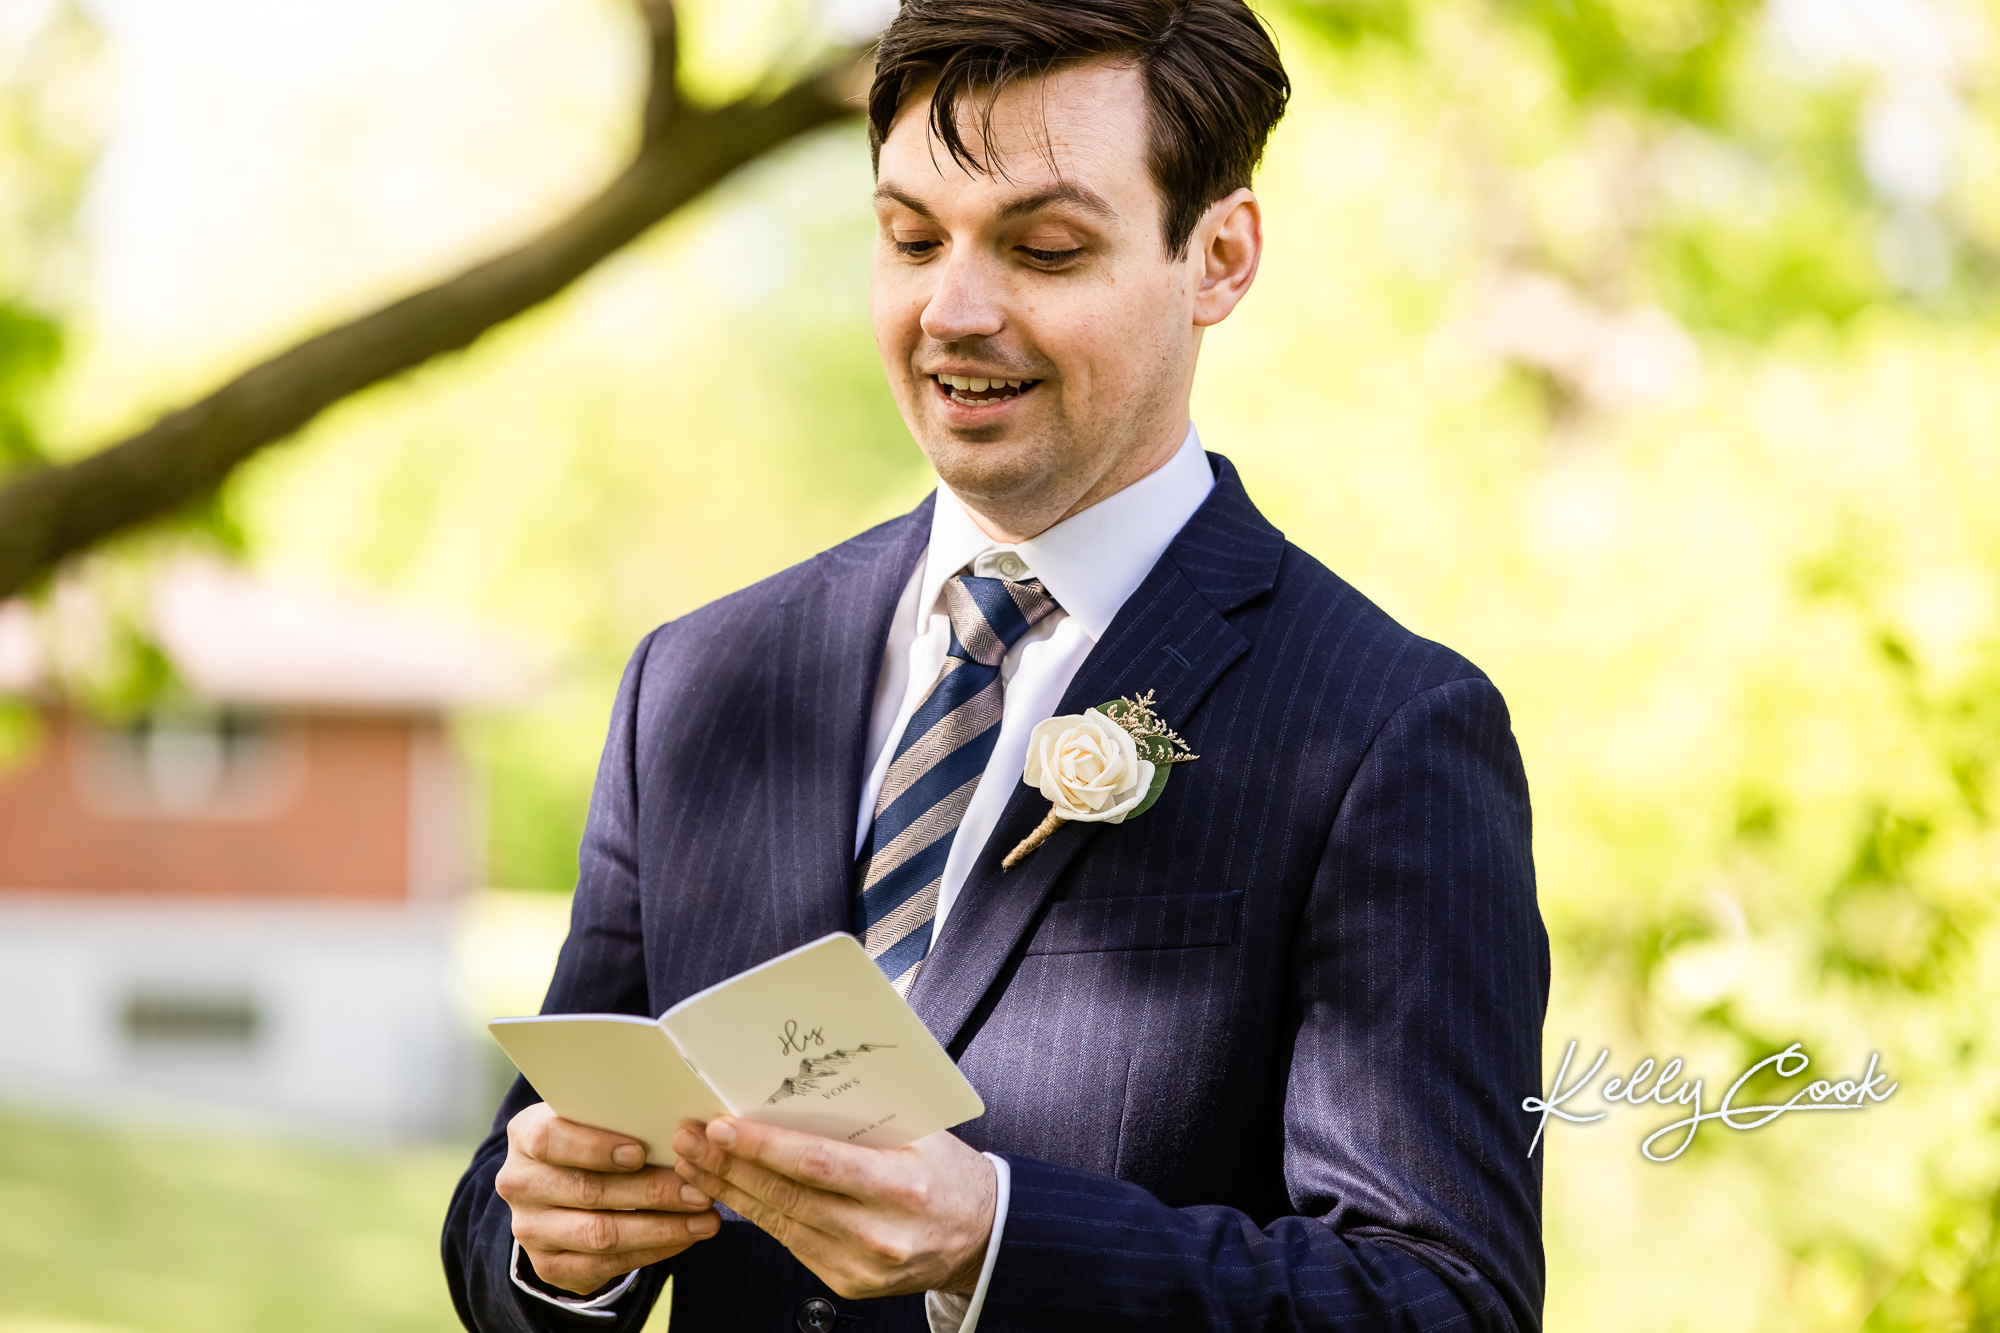 A groom reading his vows at his backyard micro wedding in St. Louis